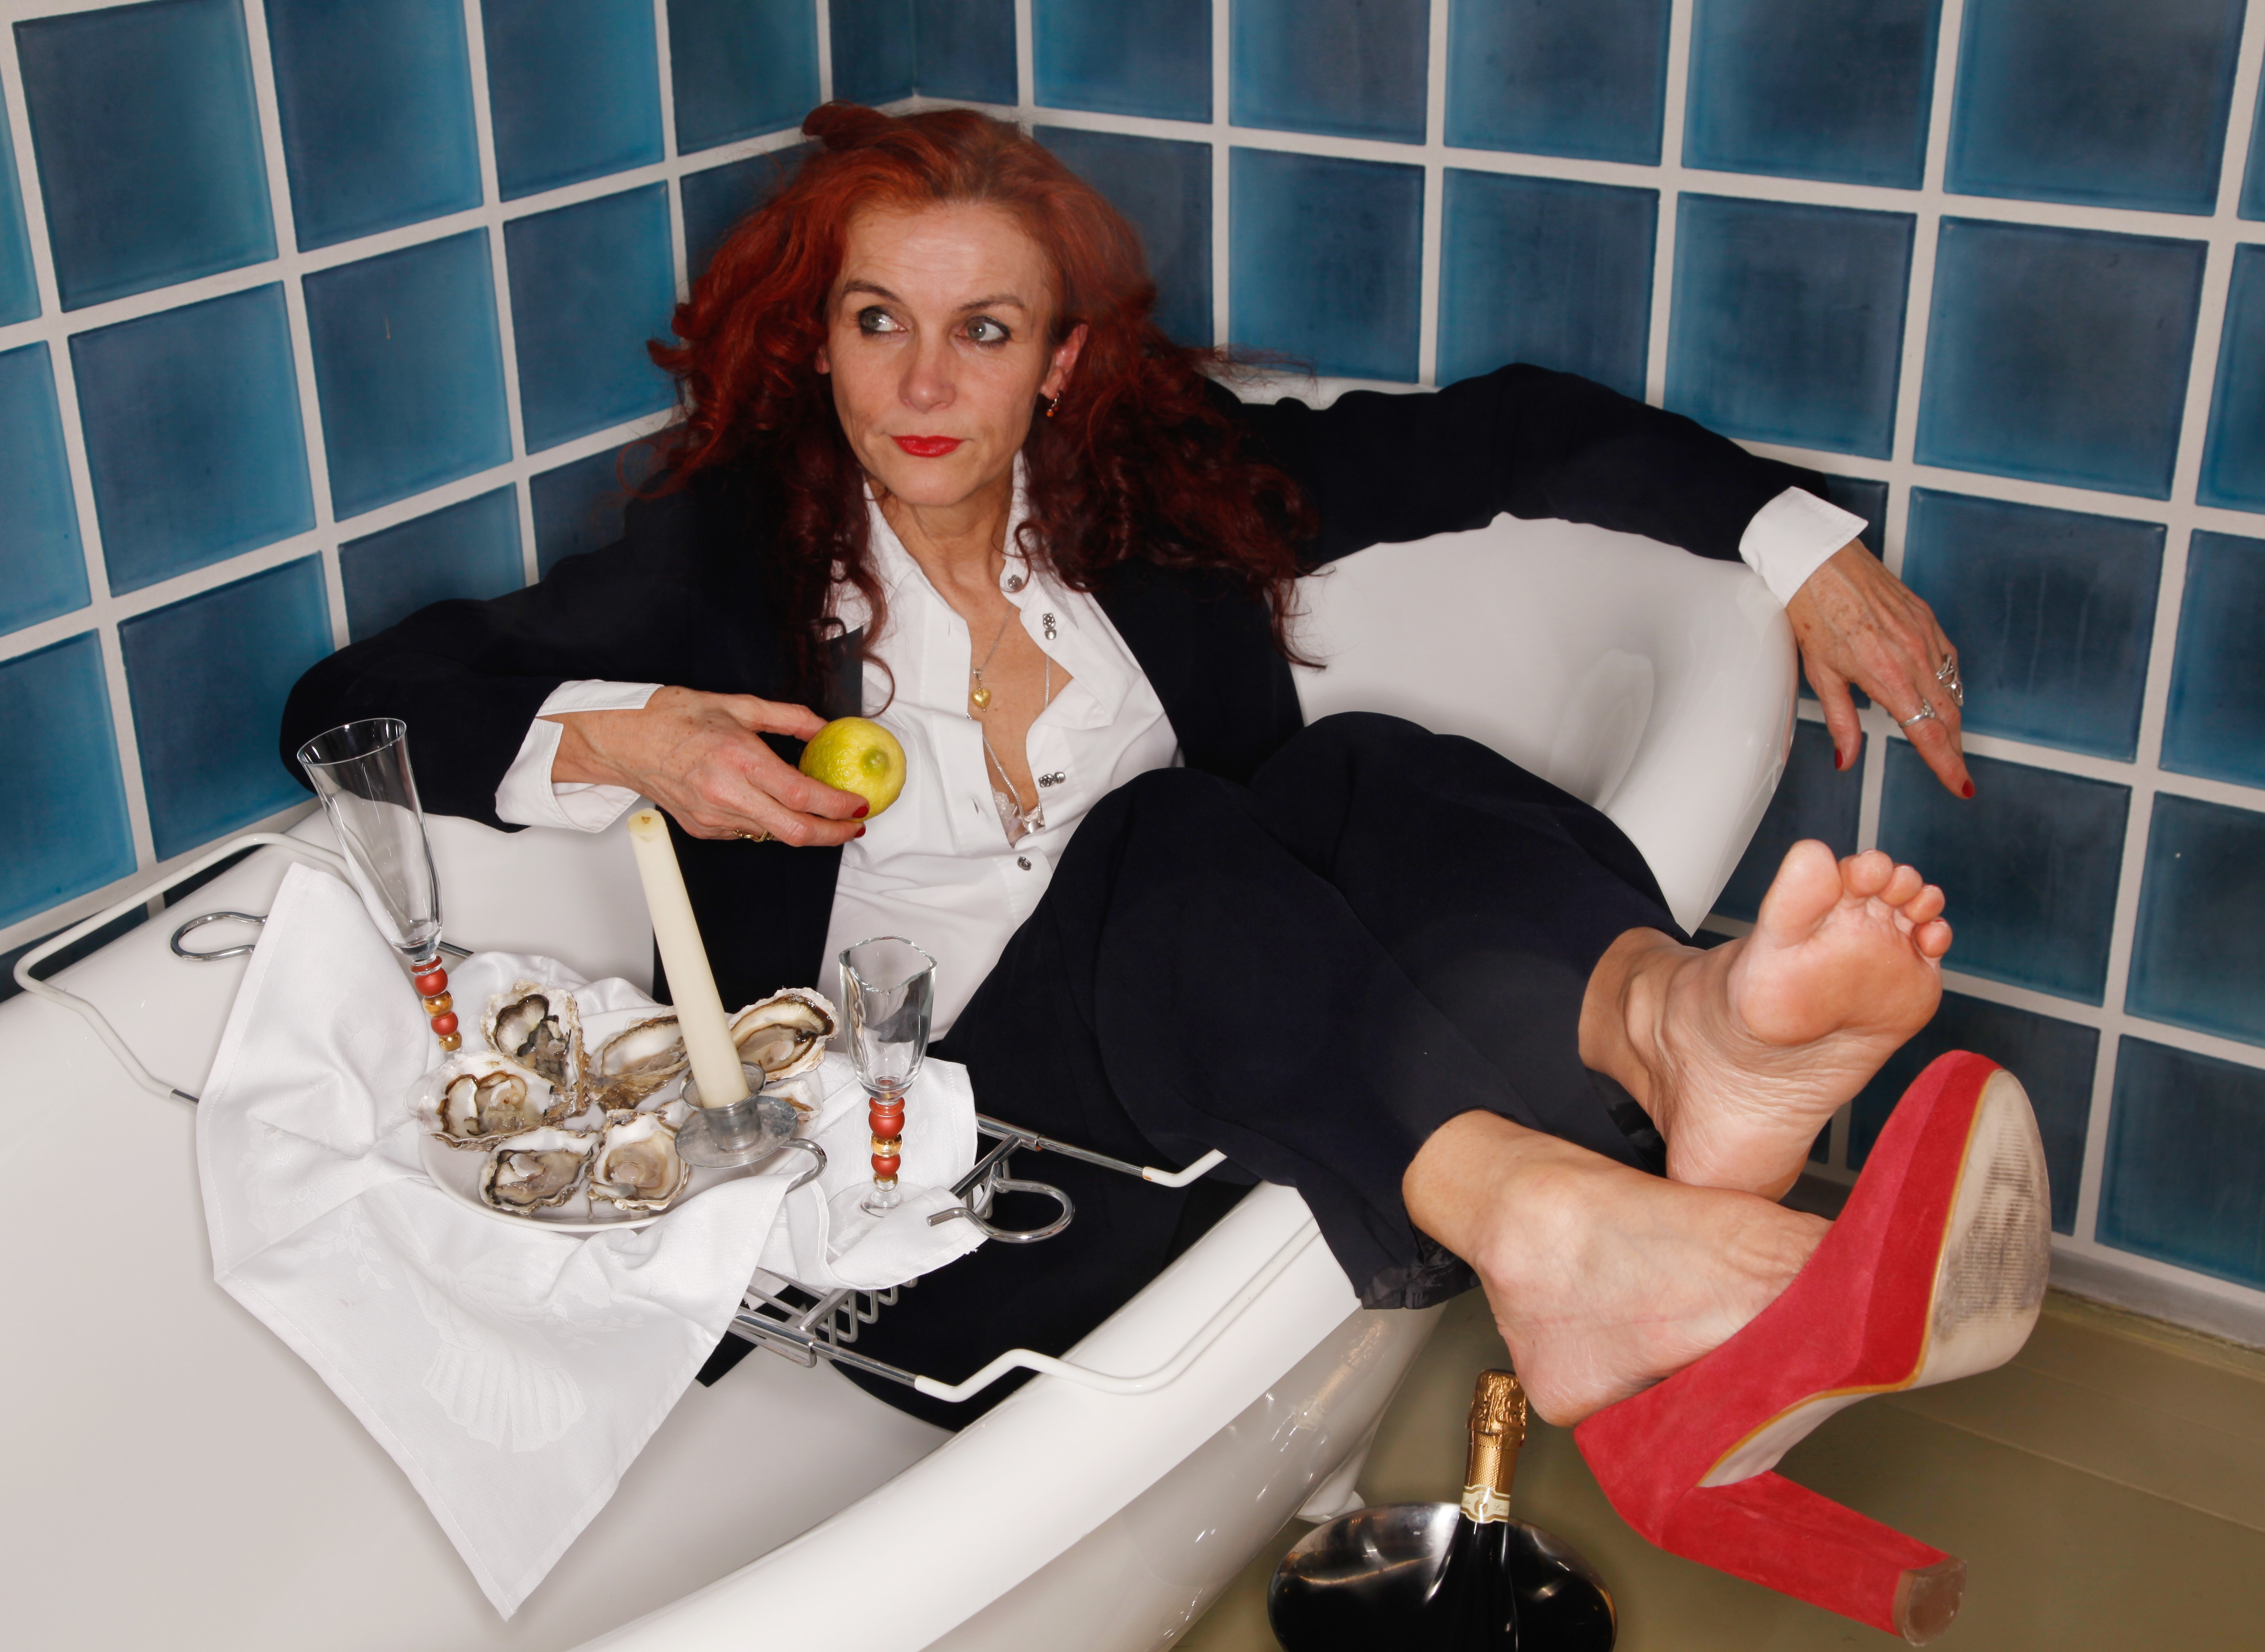 Feet Tania Cagnotto naked (55 foto and video), Pussy, Paparazzi, Twitter, butt 2017